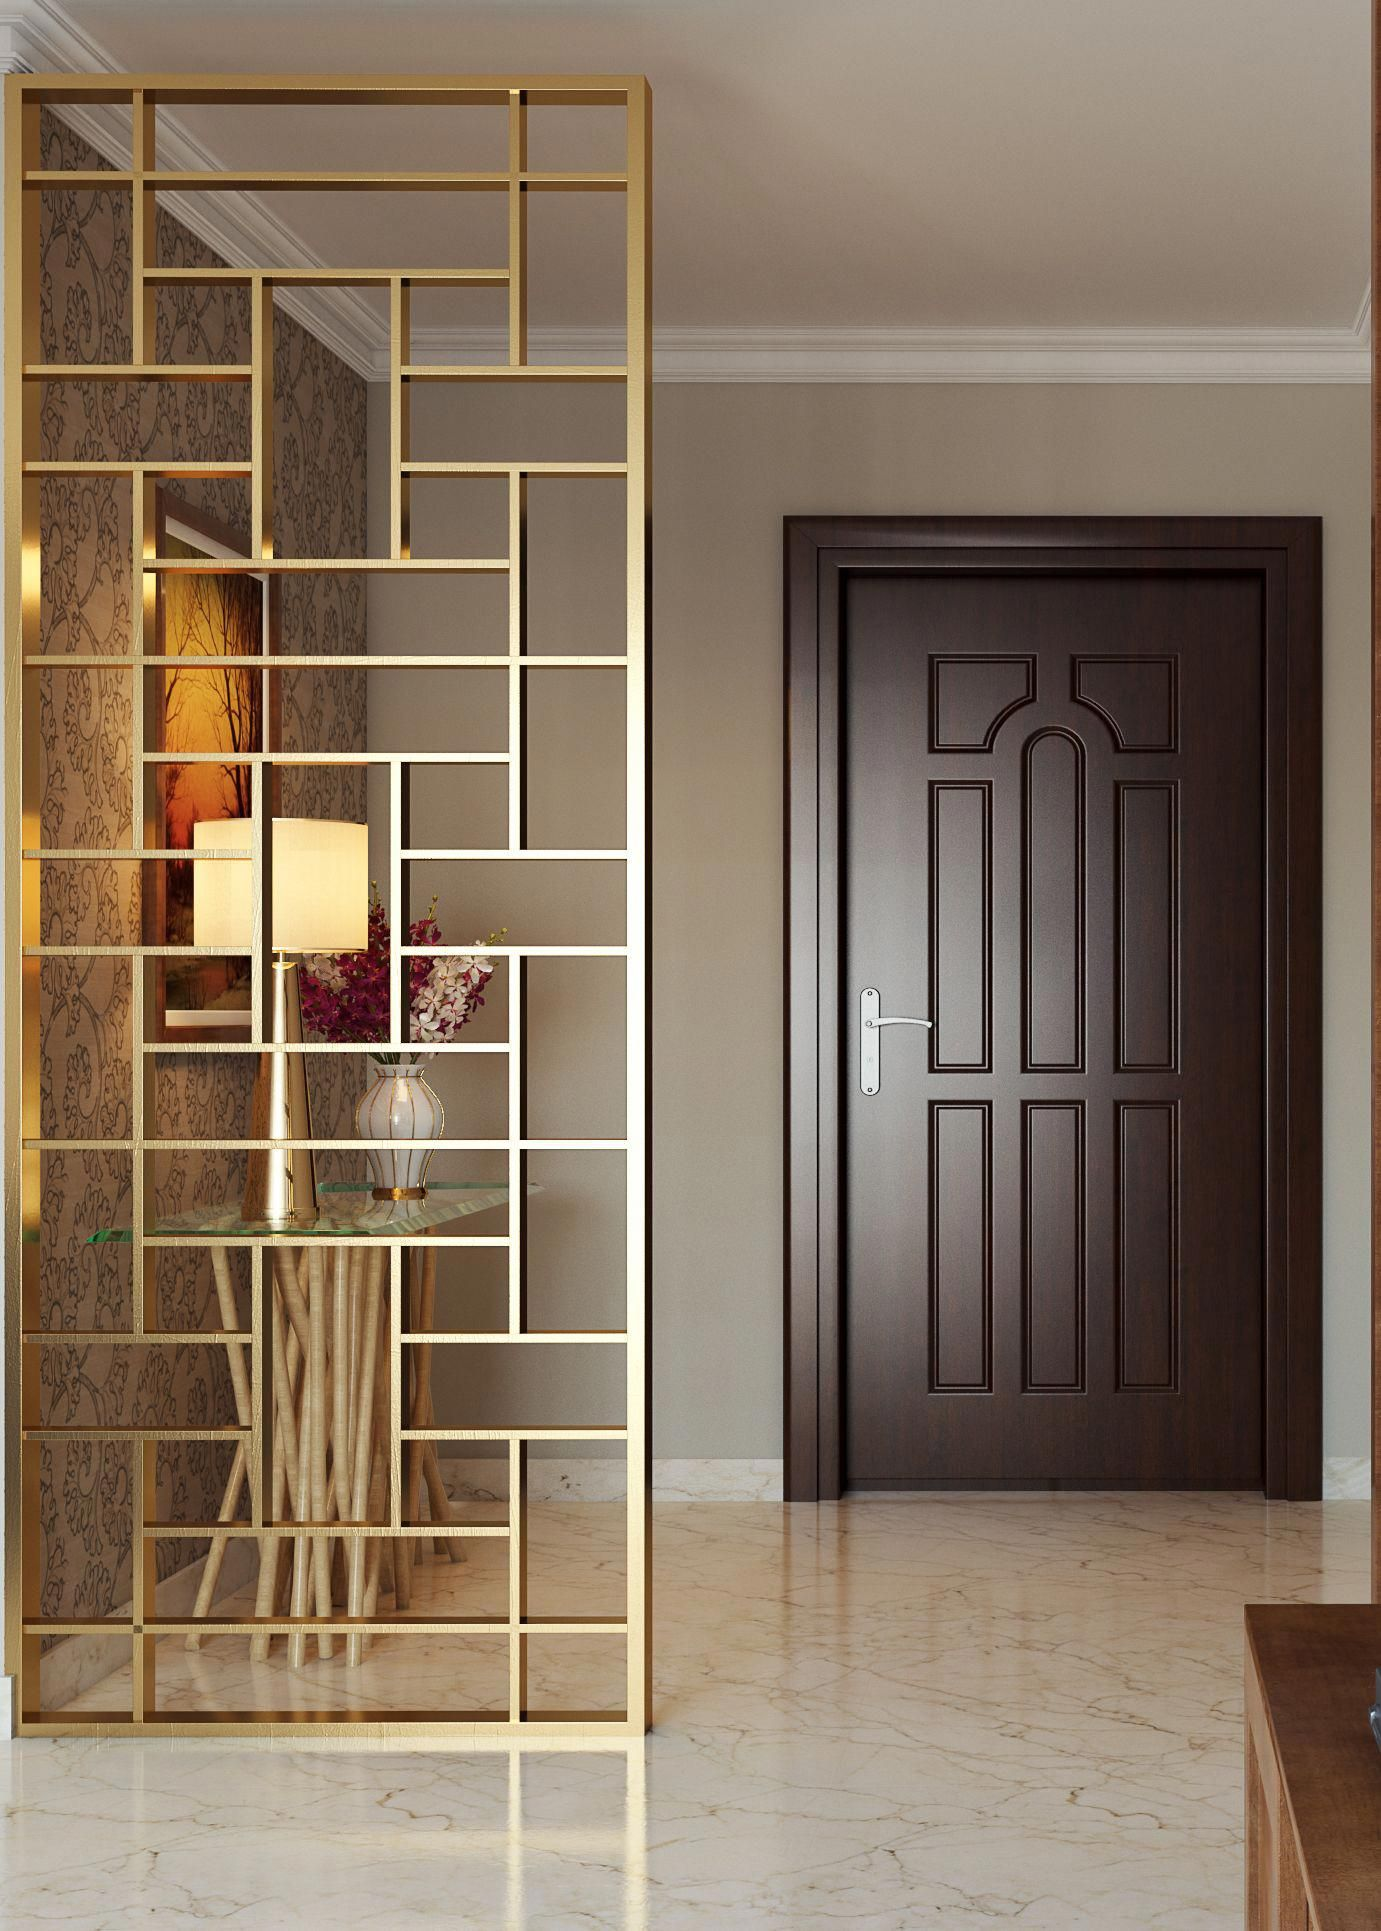 Foyer Designs Choose A Contemporary Gold Divider To Separate